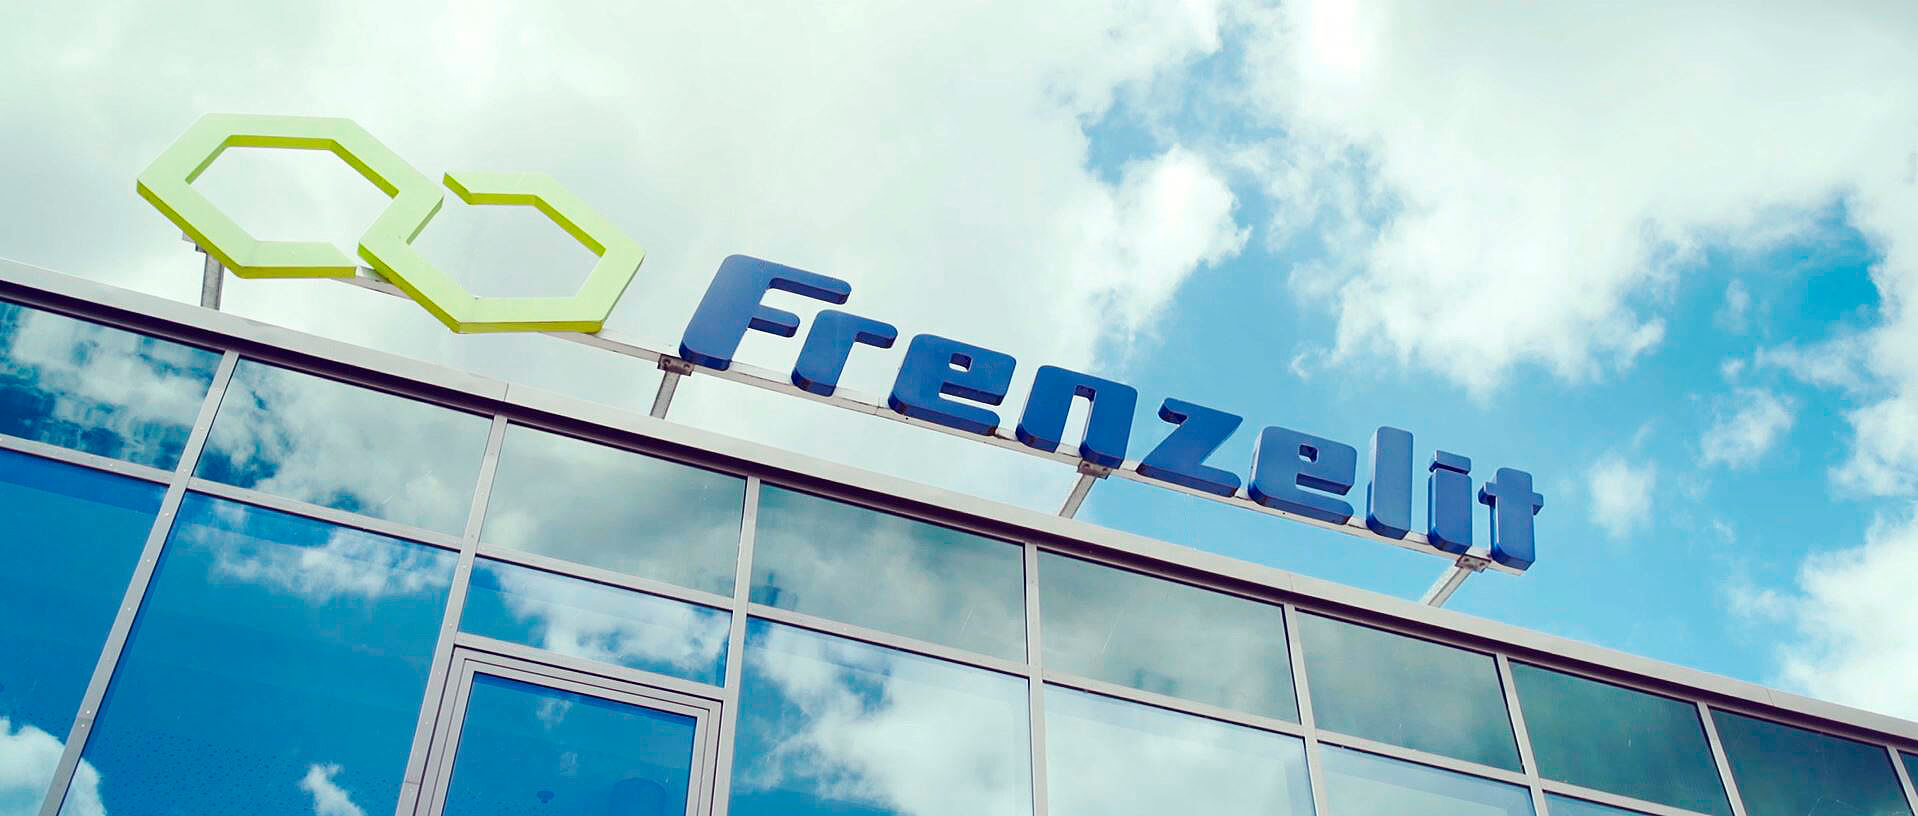 Change of name to Frenzelit GmbH